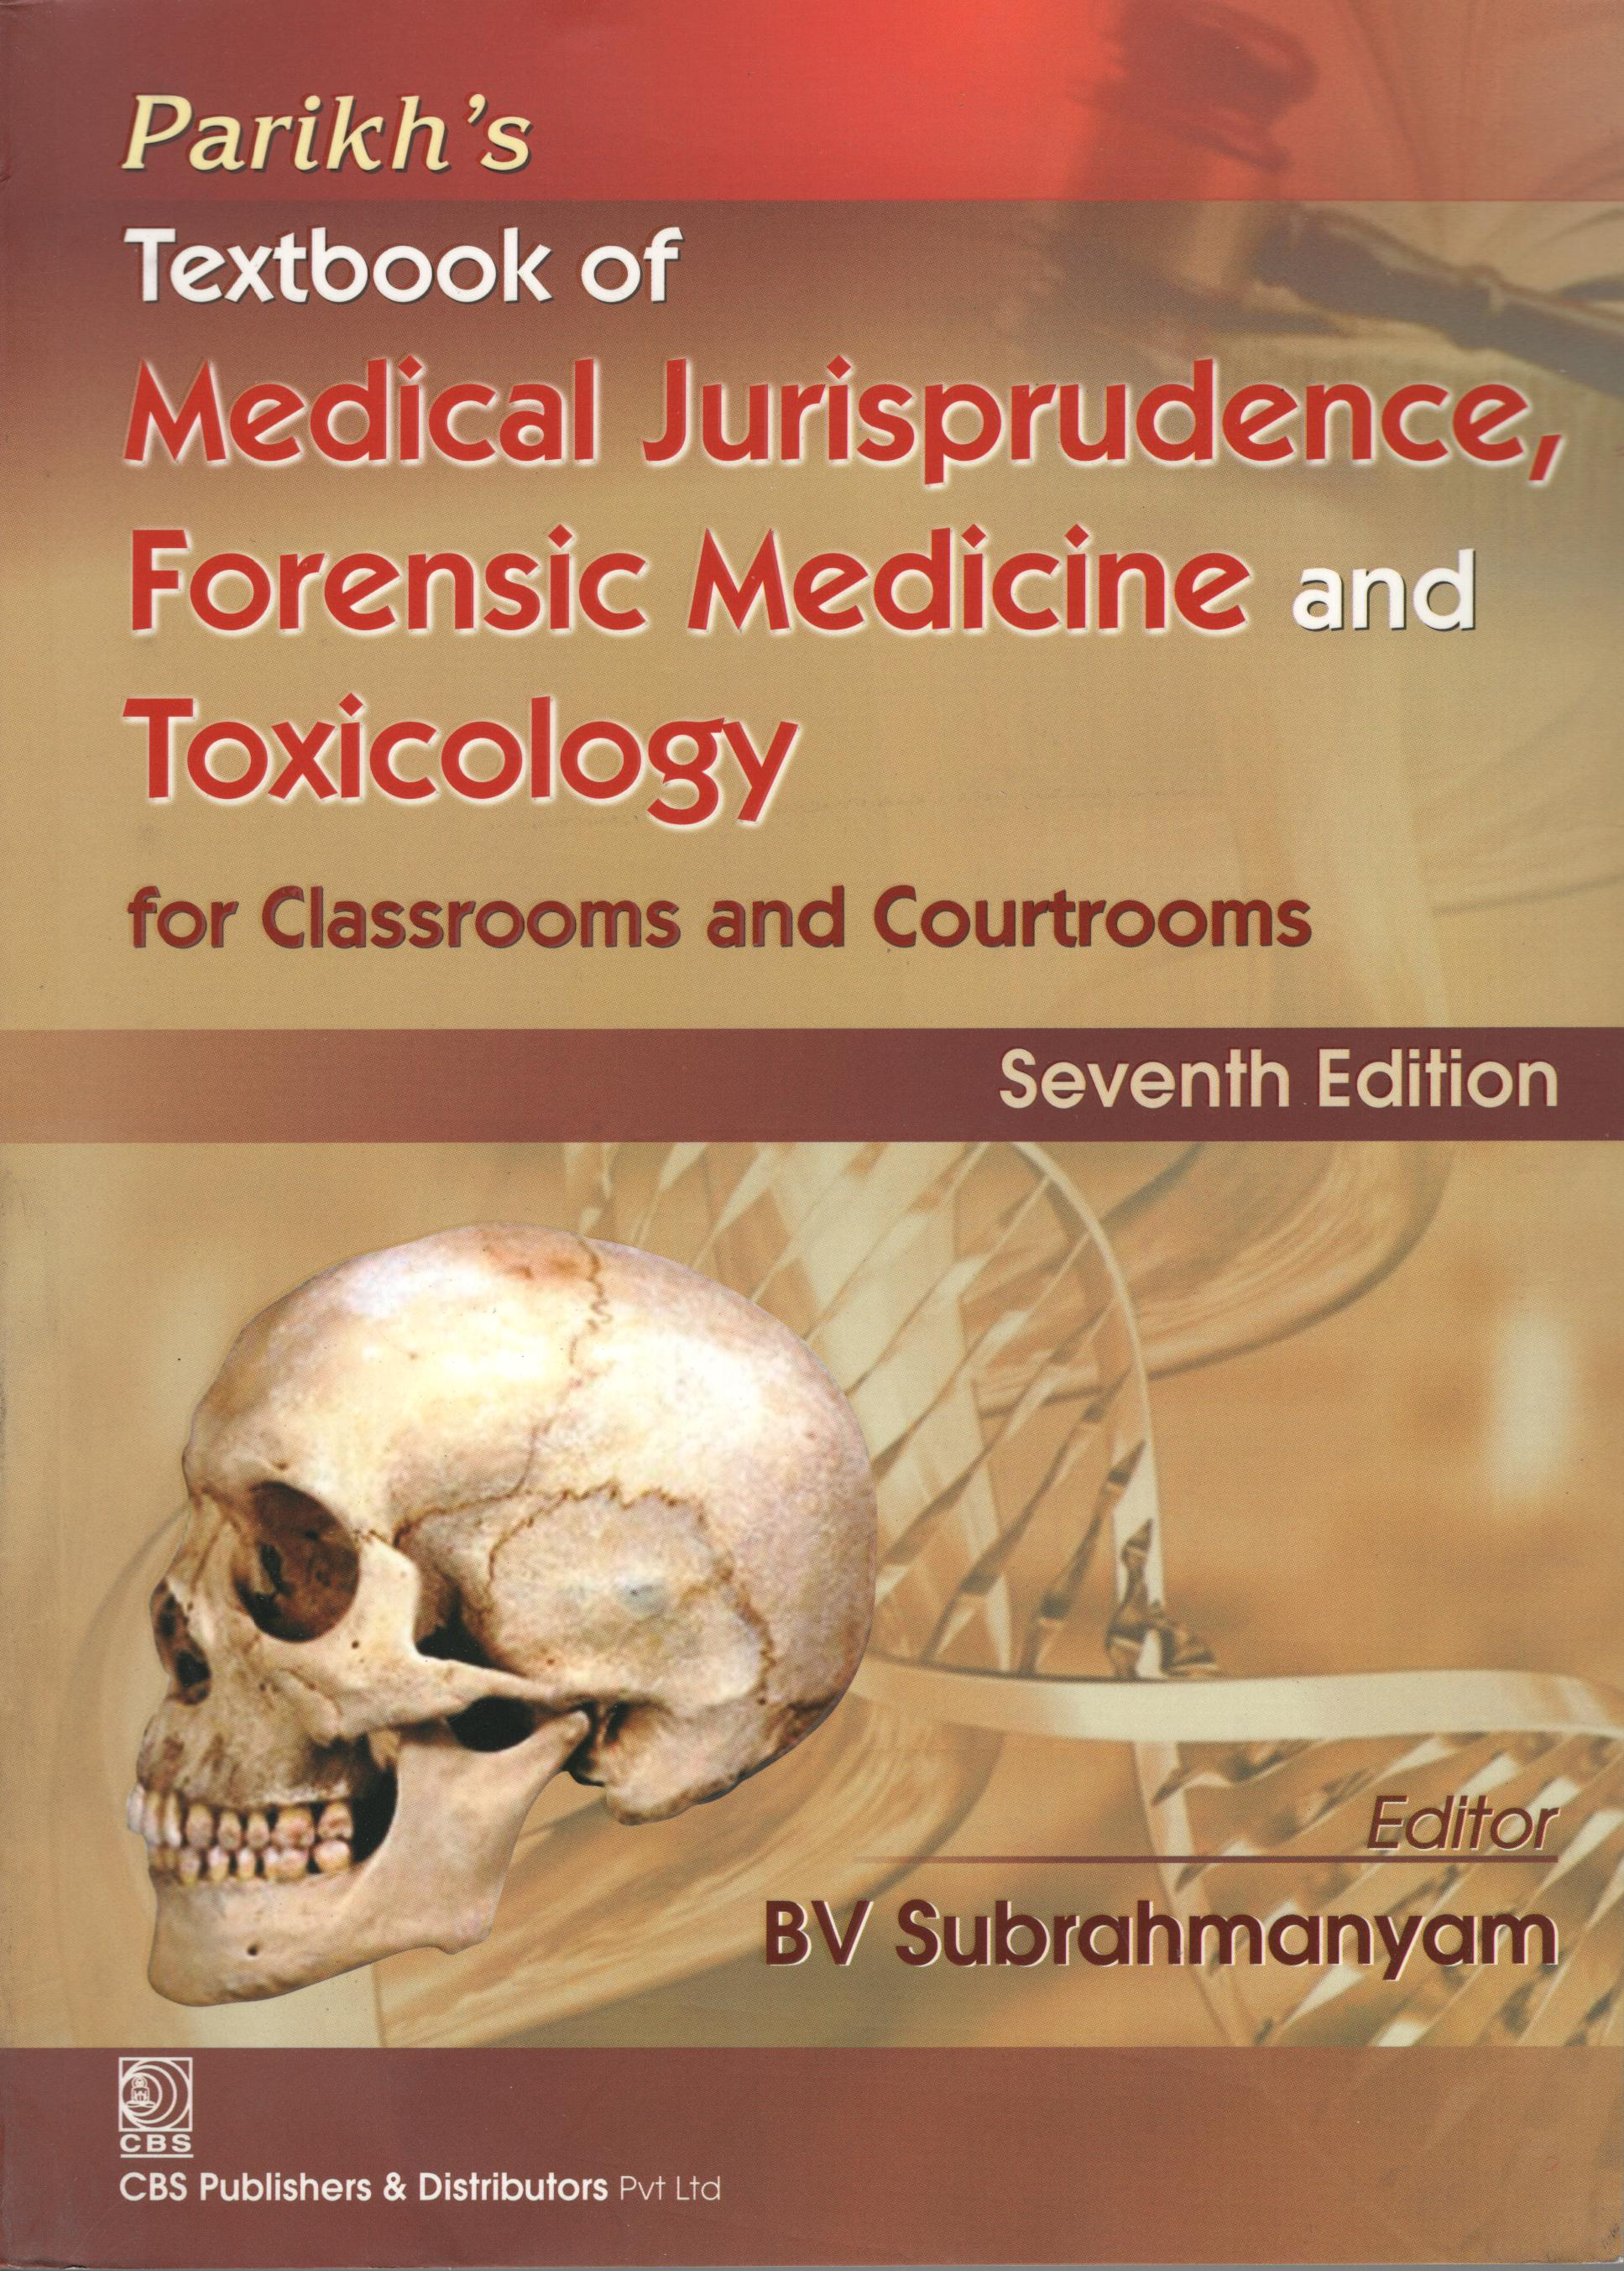 MEDICAL JURISPRUDENCE FORENSIC MEDICINE AND TOXICOLOGY